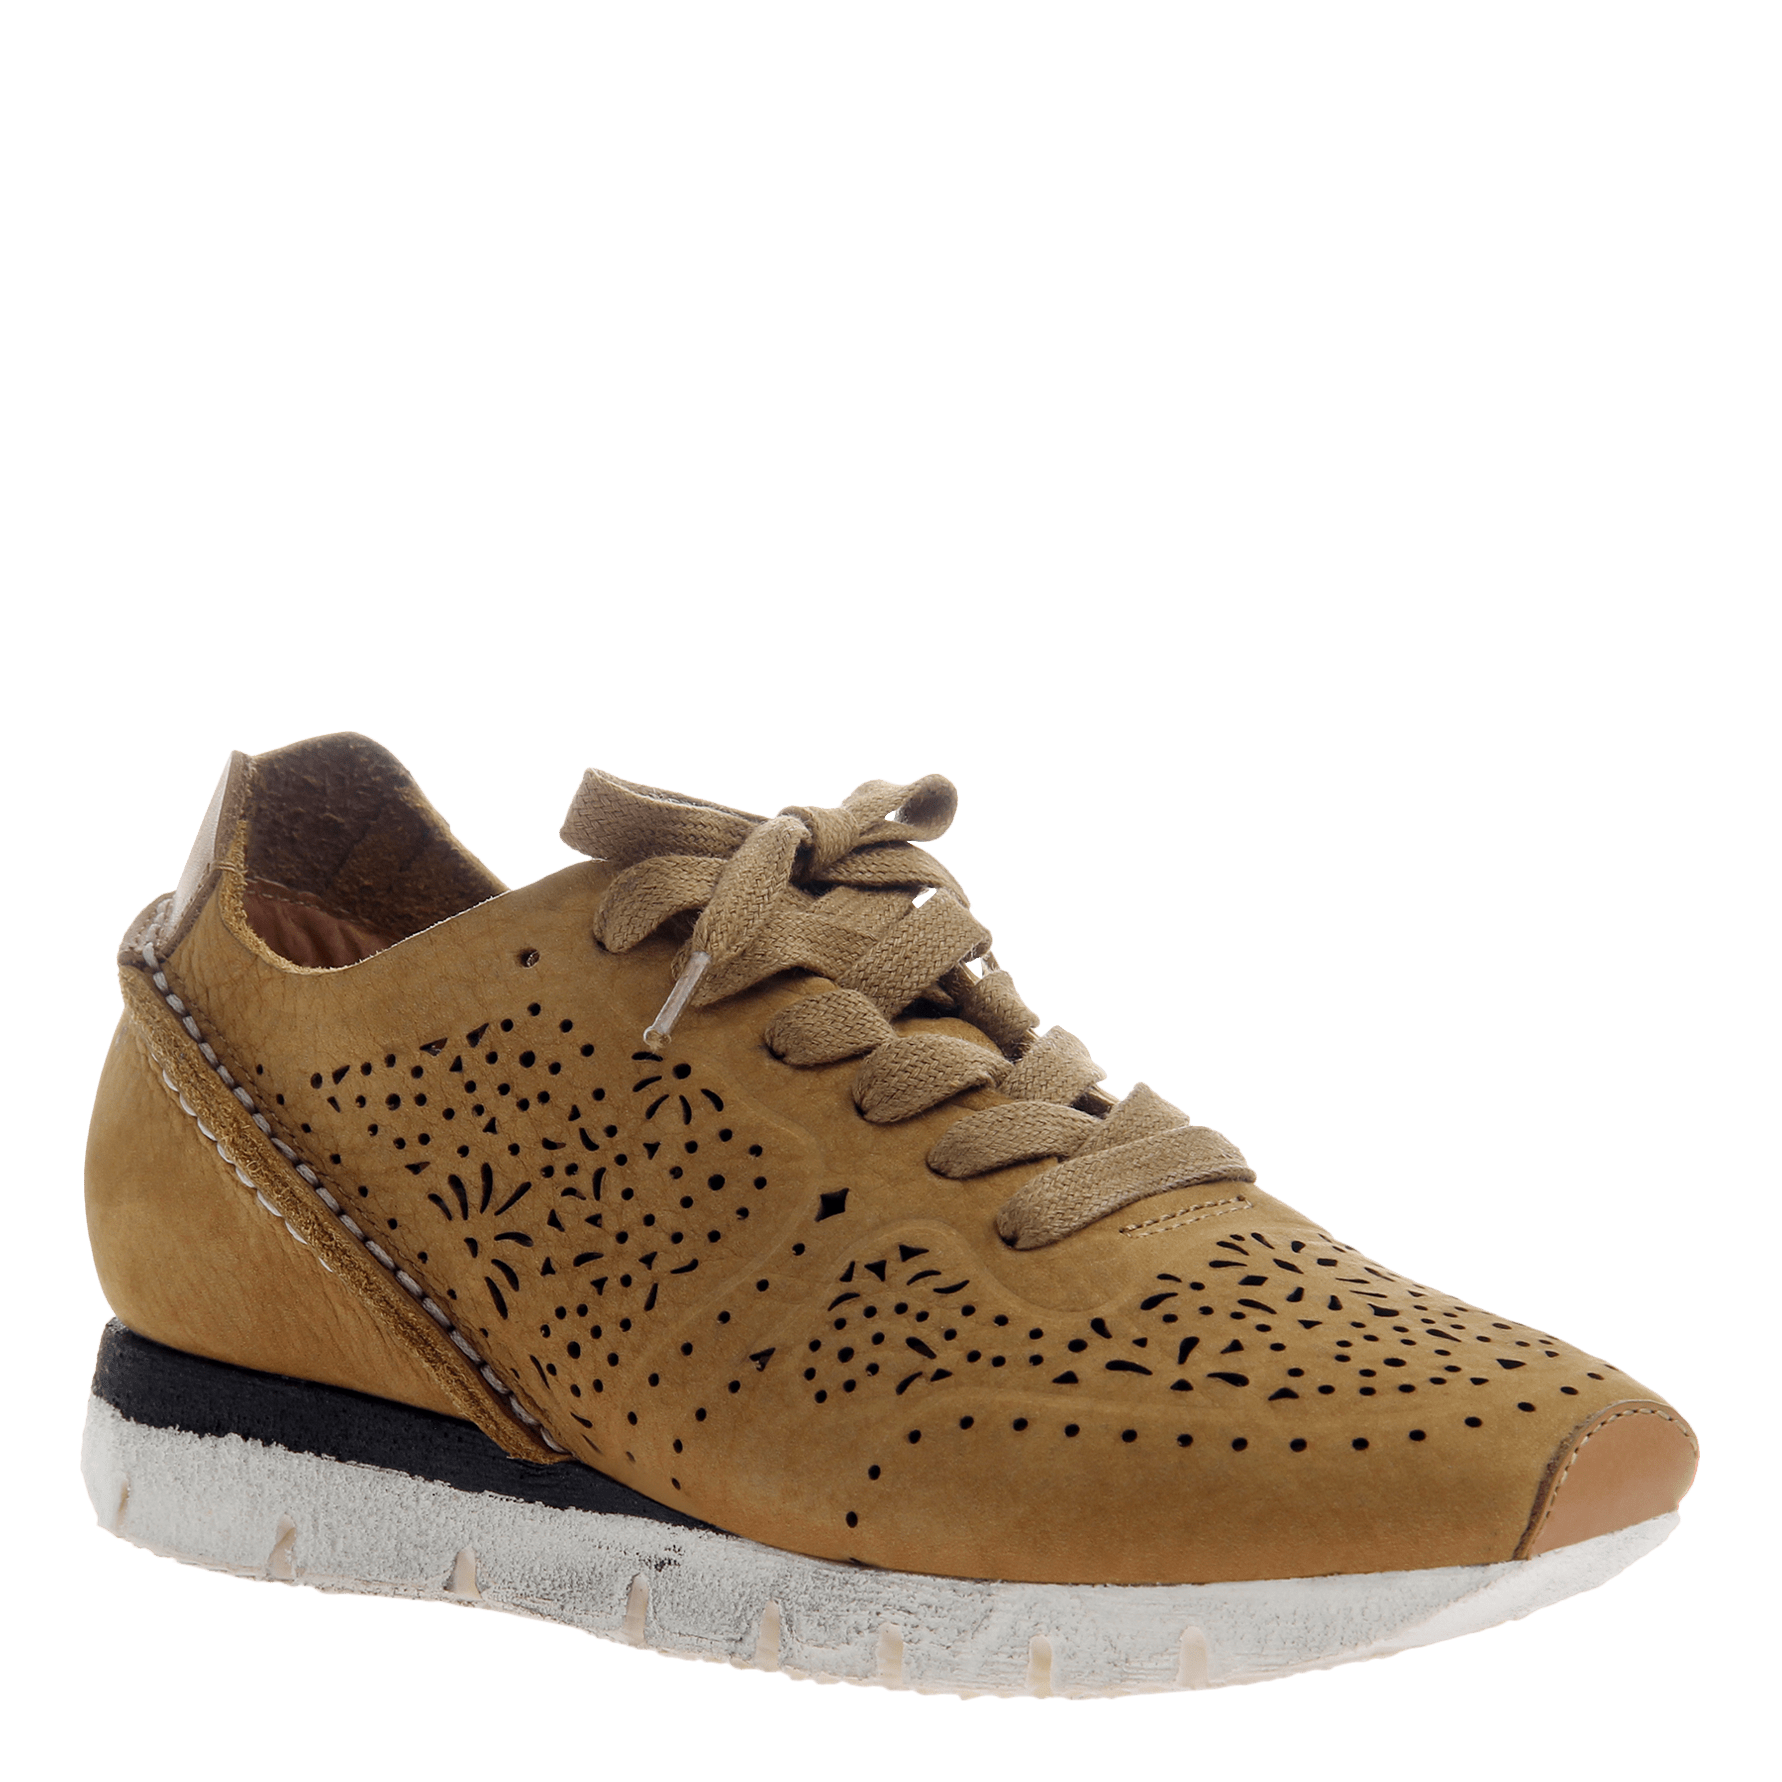 Khora women's sneaker in Gold Washed